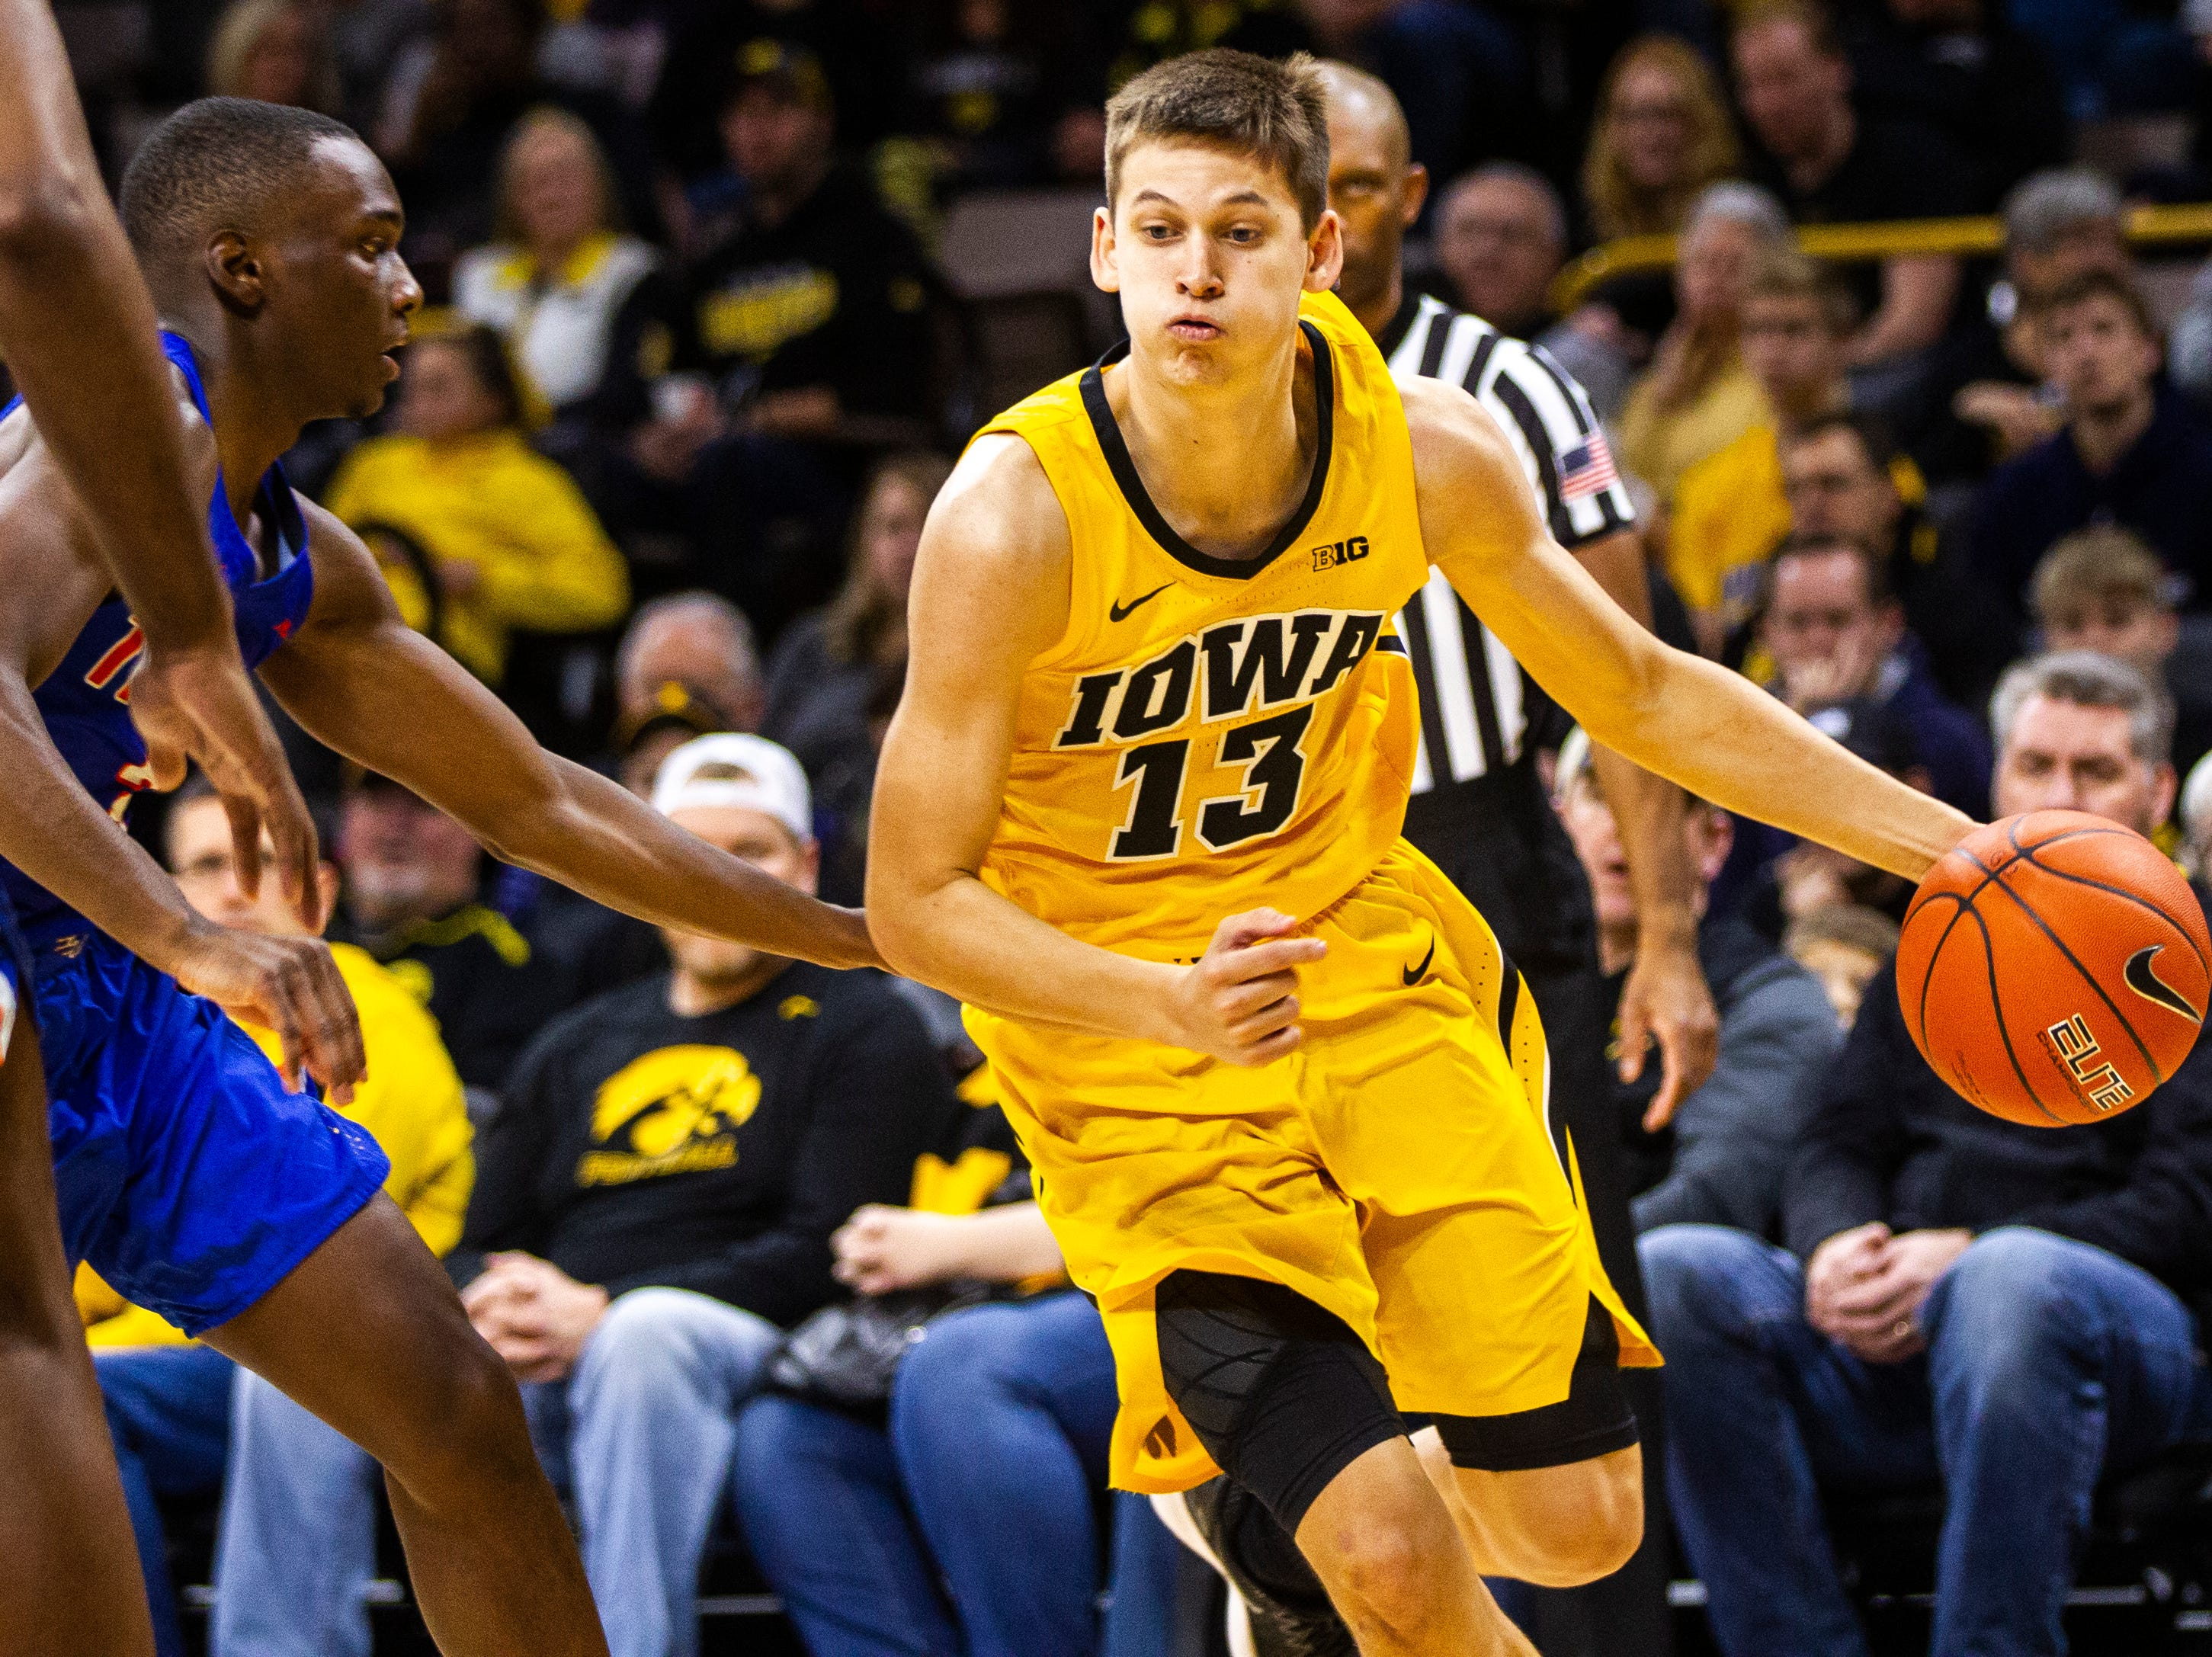 Iowa guard Austin Ash (13) drives to the hoop during a NCAA men's basketball game on Saturday, Dec. 22, 2018, at Carver-Hawkeye Arena in Iowa City.